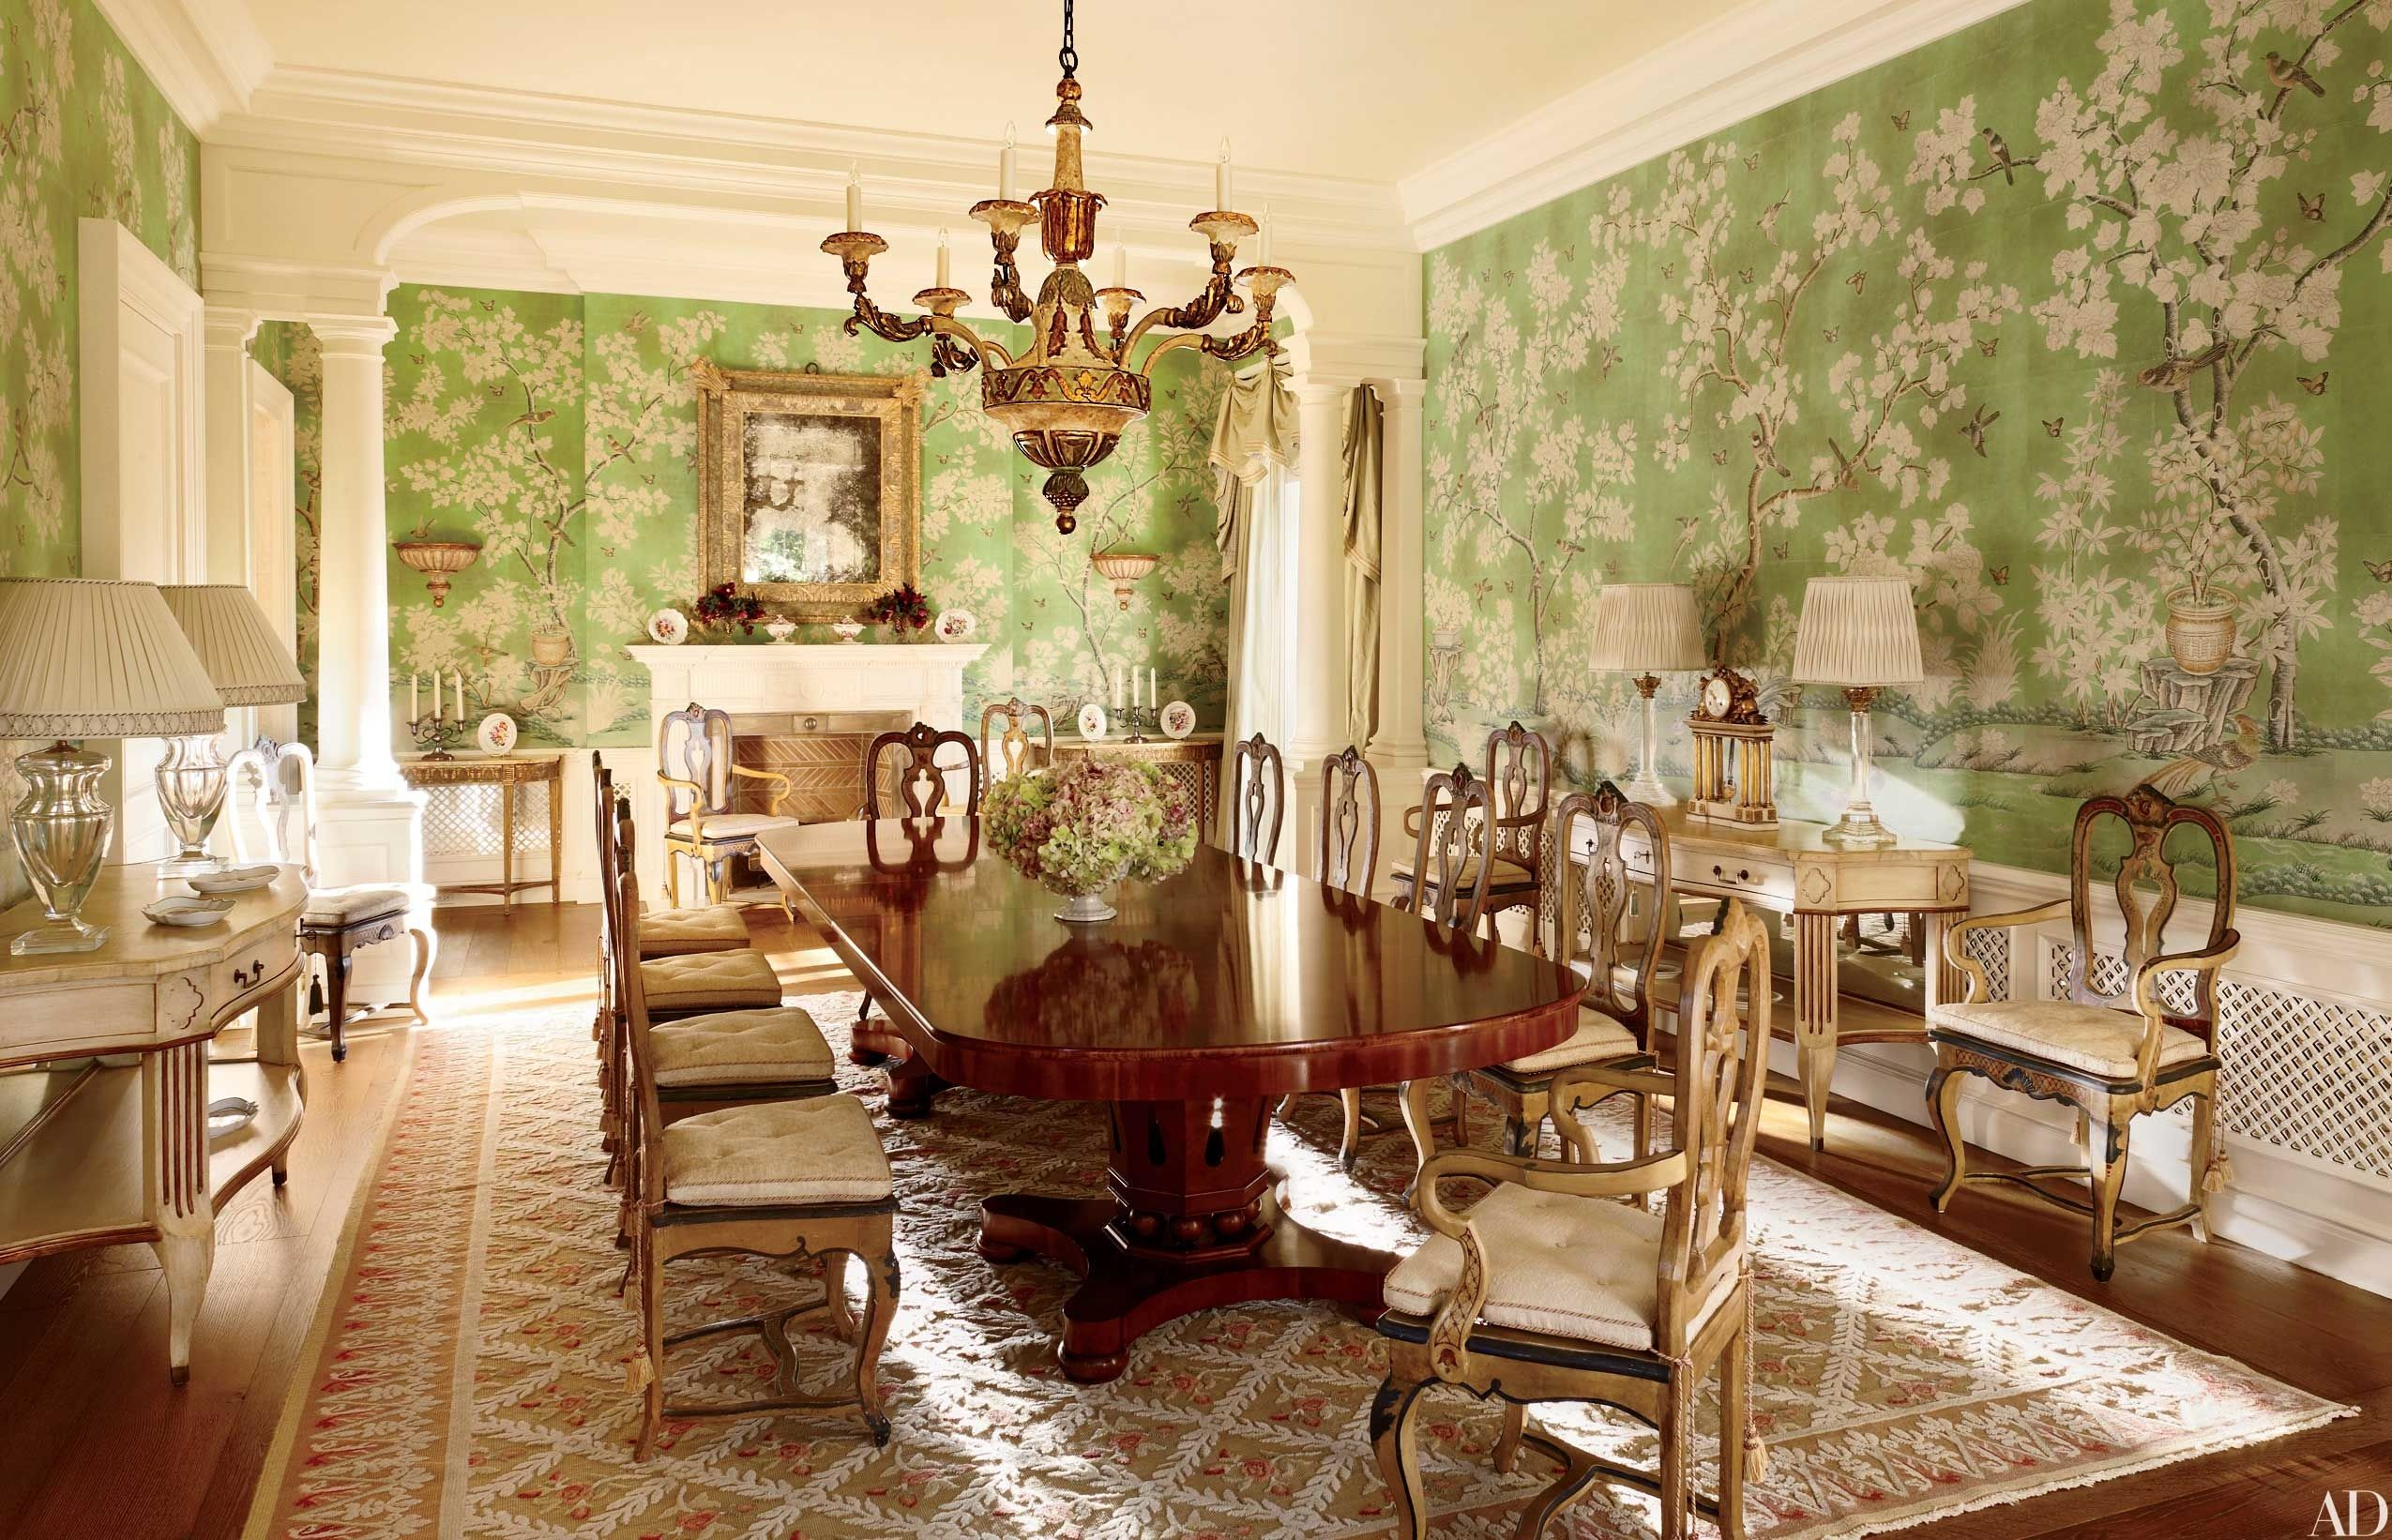 Chinoiserie Wallpaper and Panels Take the Stage in These